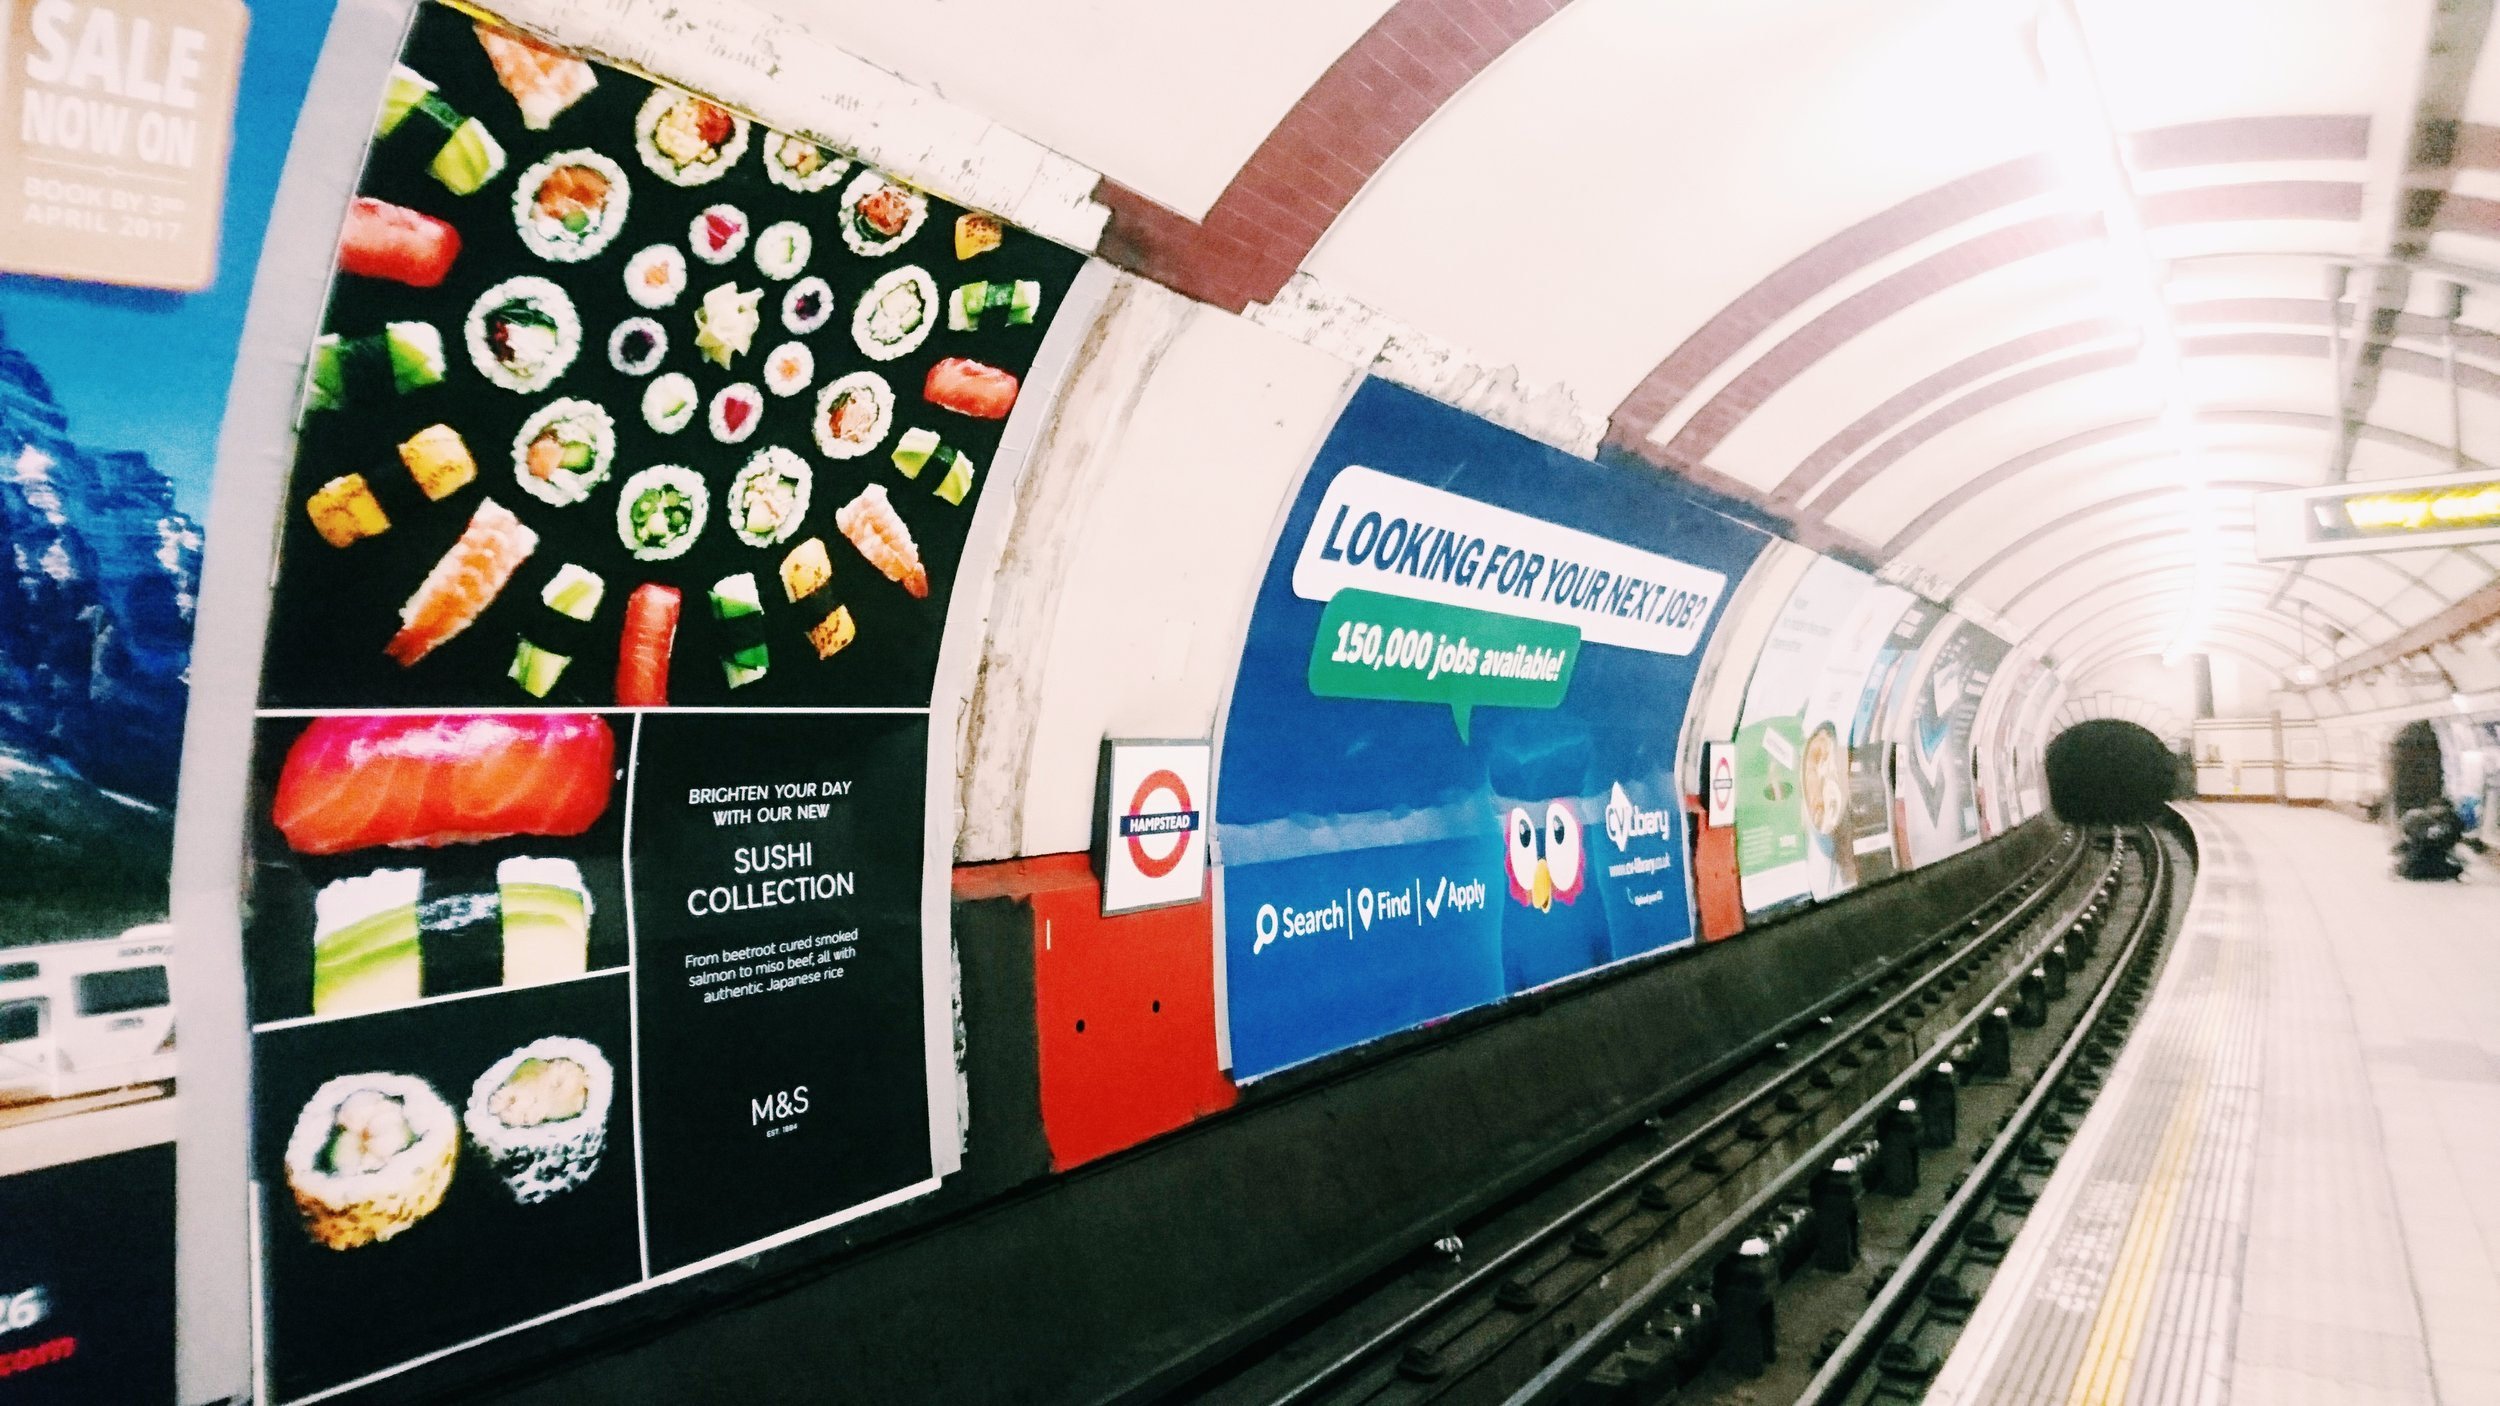 m&s sushi stacker london underground